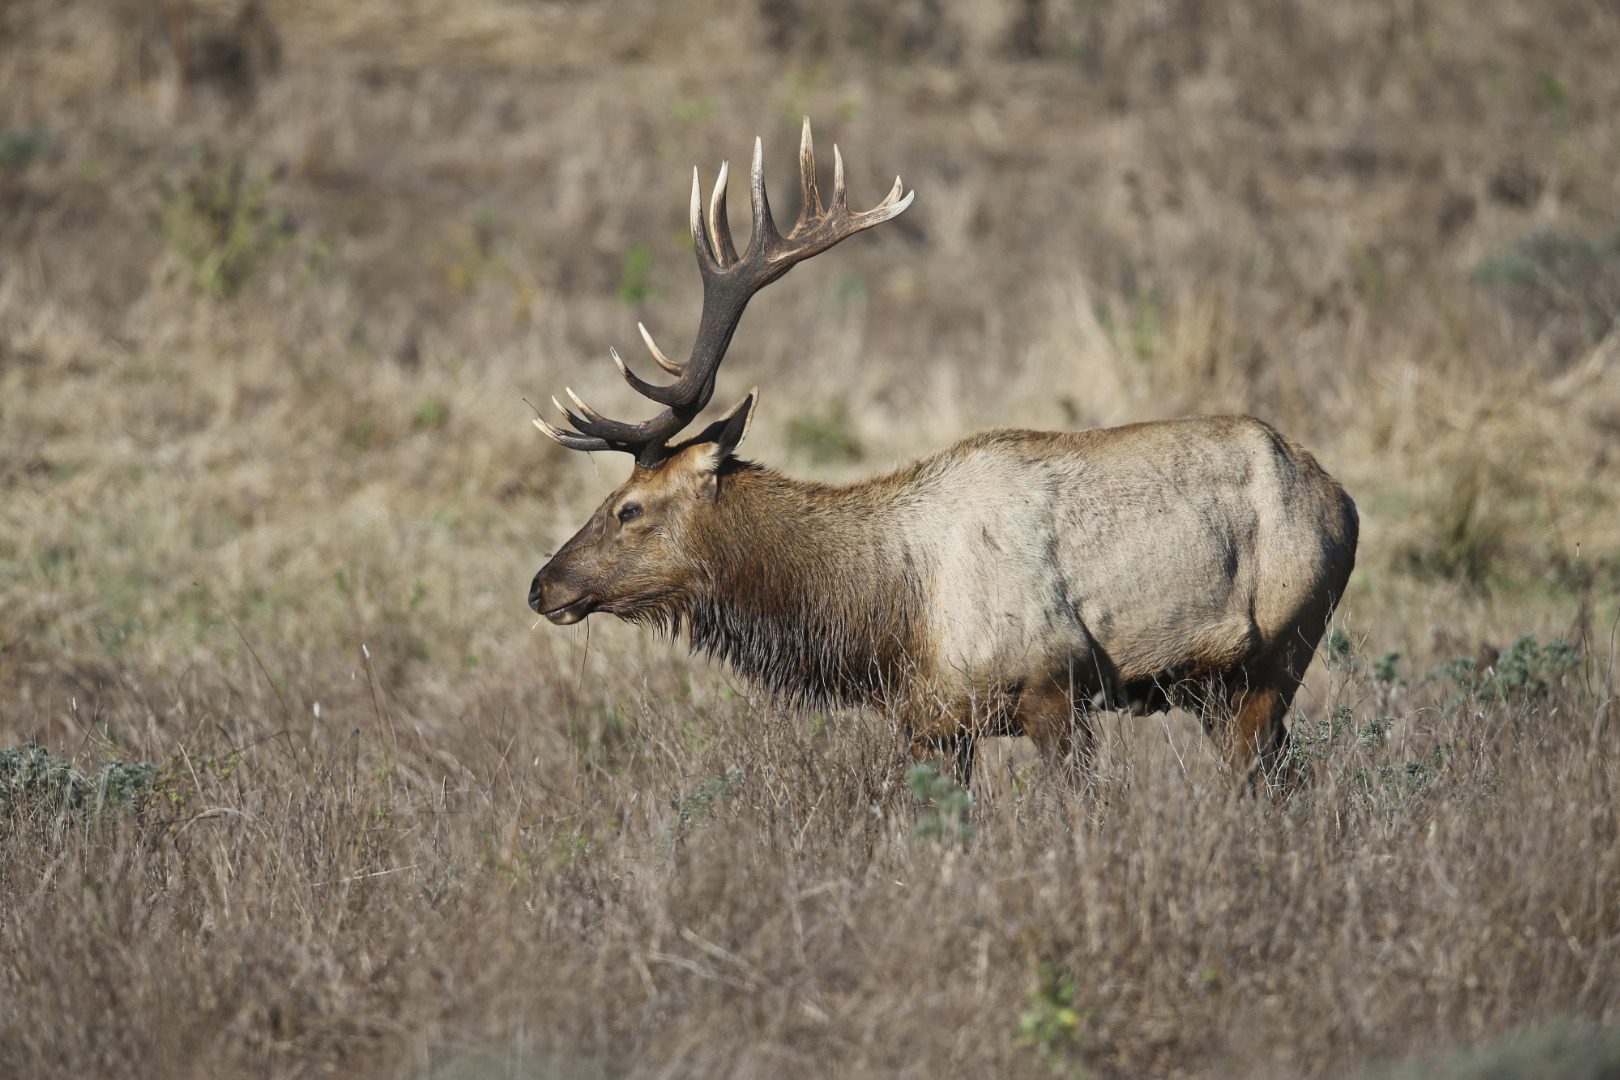 How are antlers different from horns and pronghorns?